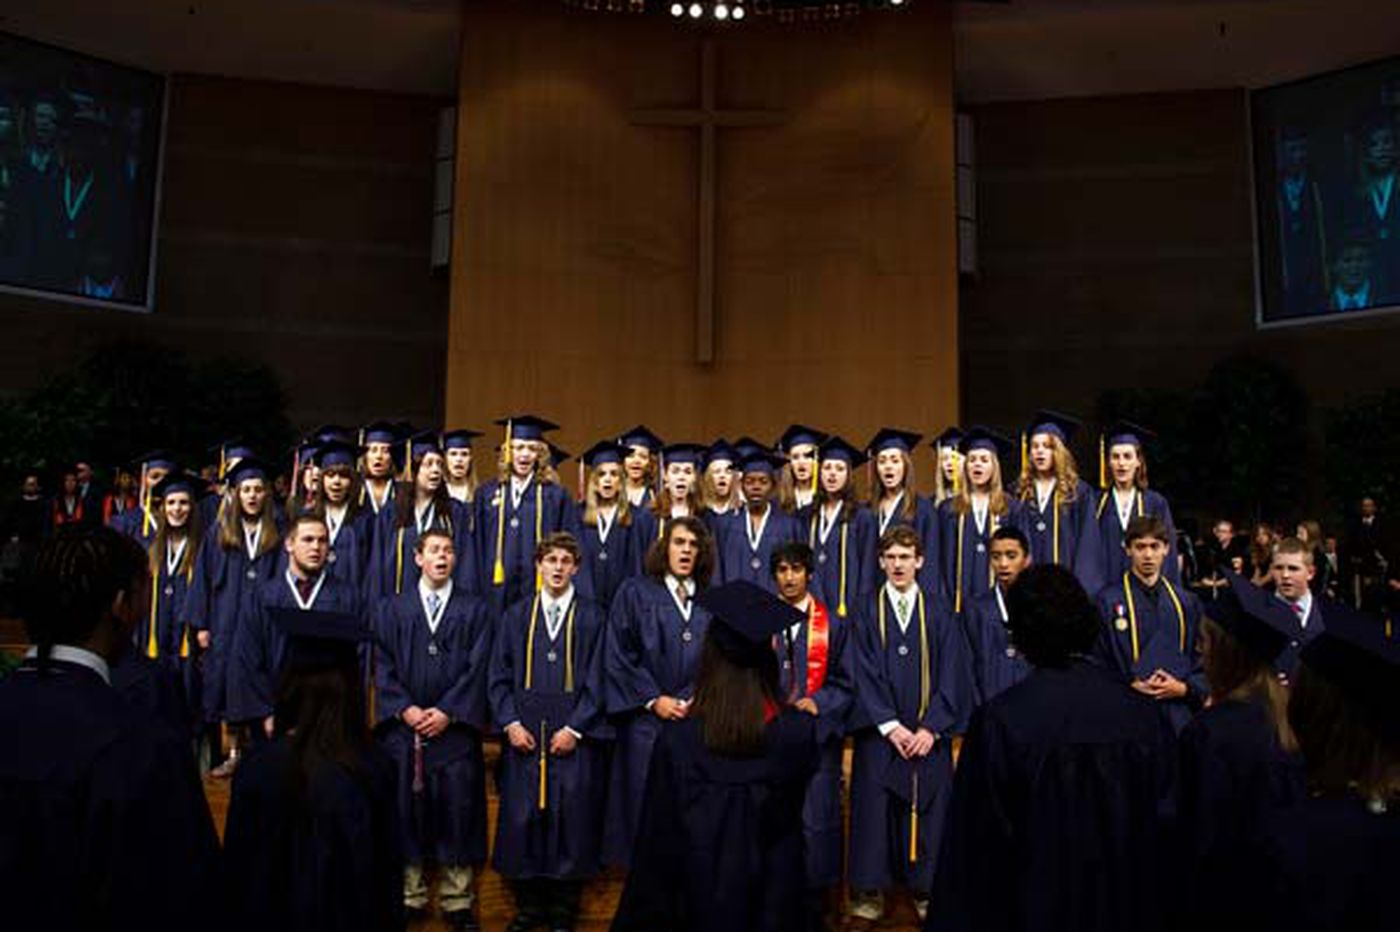 Does using a church facility for graduation ceremony violate the Constitution?